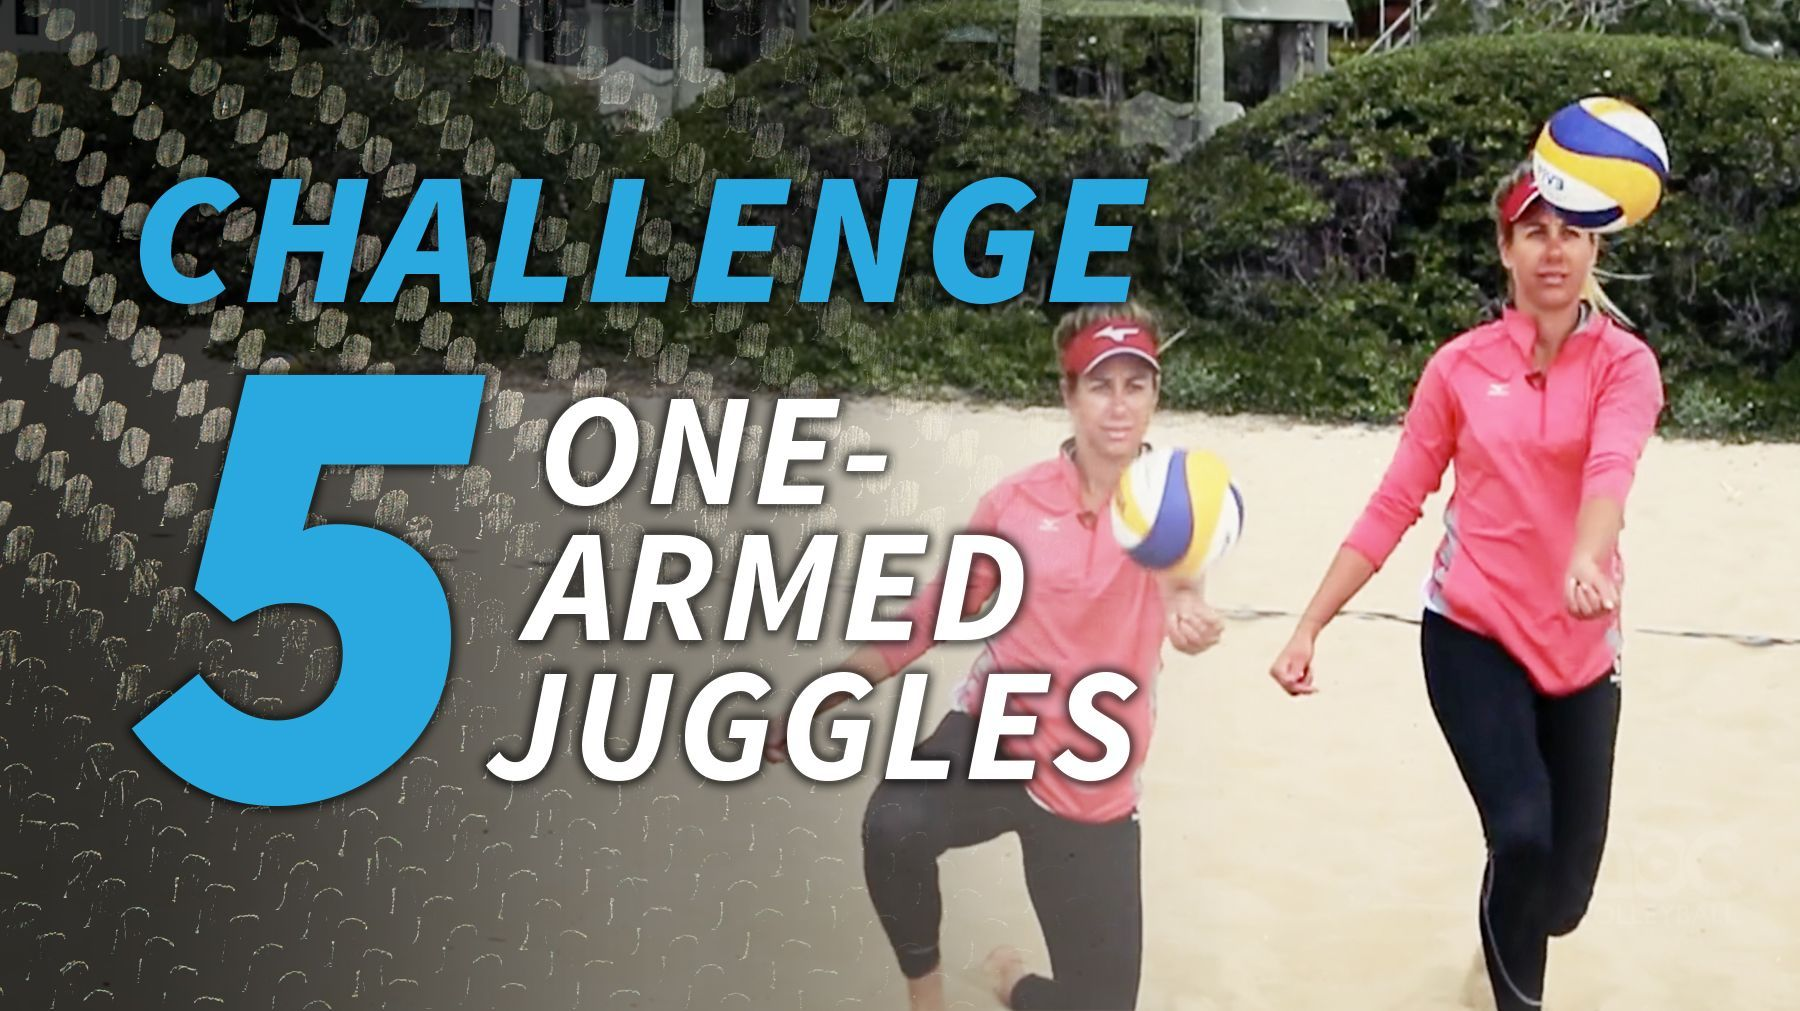 April Ross Challenge 5 One Armed Juggles The Art Of Coaching Volleyball April Ross Coaching Volleyball Challenges